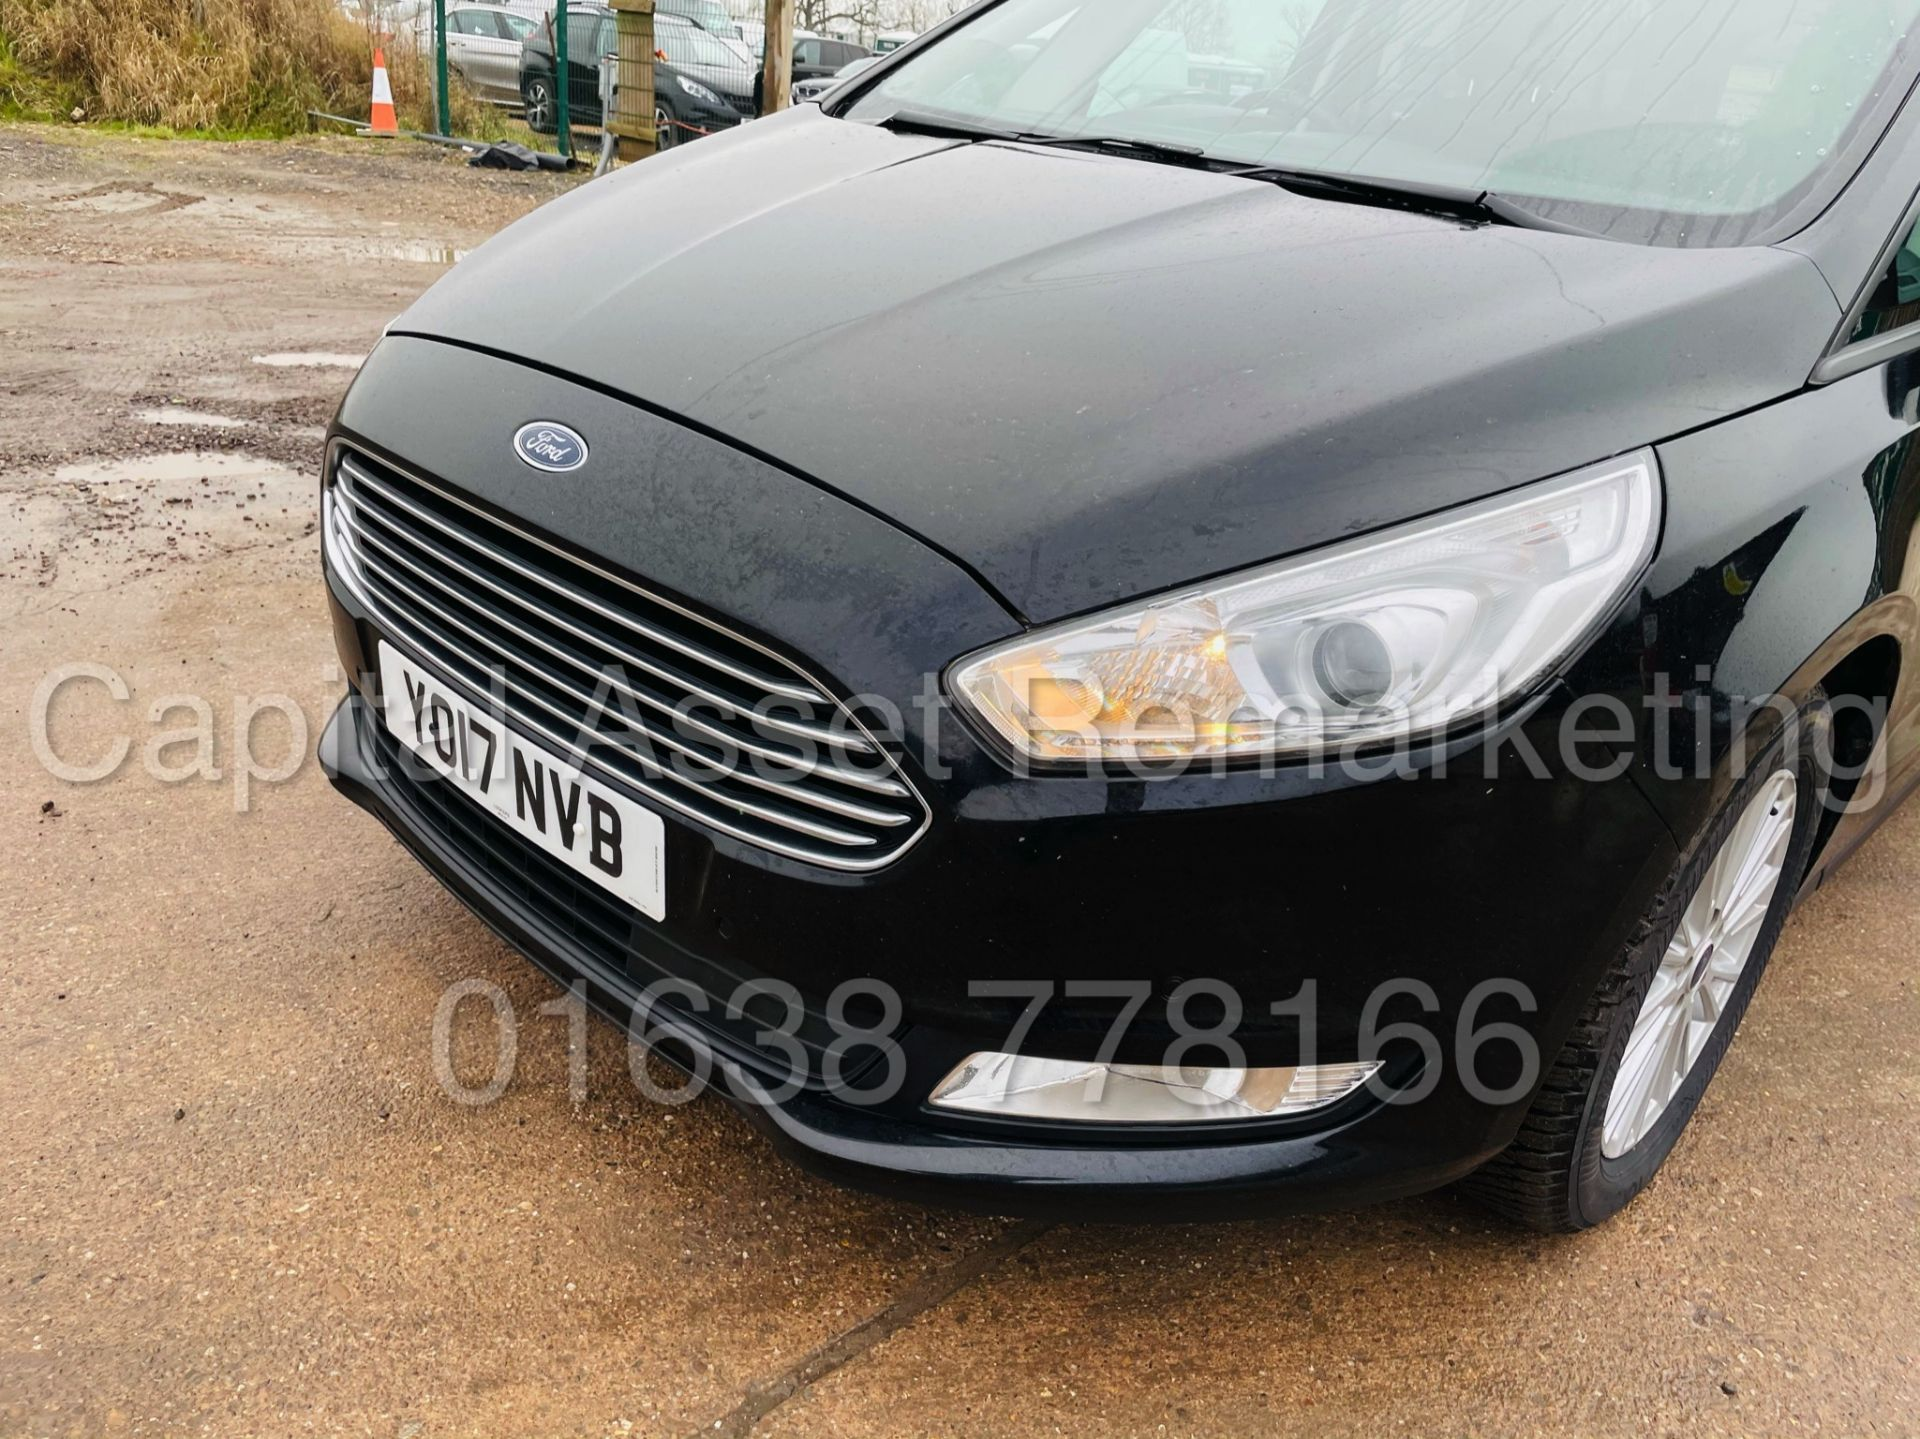 (On Sale) FORD GALAXY *ZETEC EDITION* 7 SEATER MPV (2017 - EURO 6) '2.0 TDCI - AUTO' (1 OWNER) - Image 17 of 48